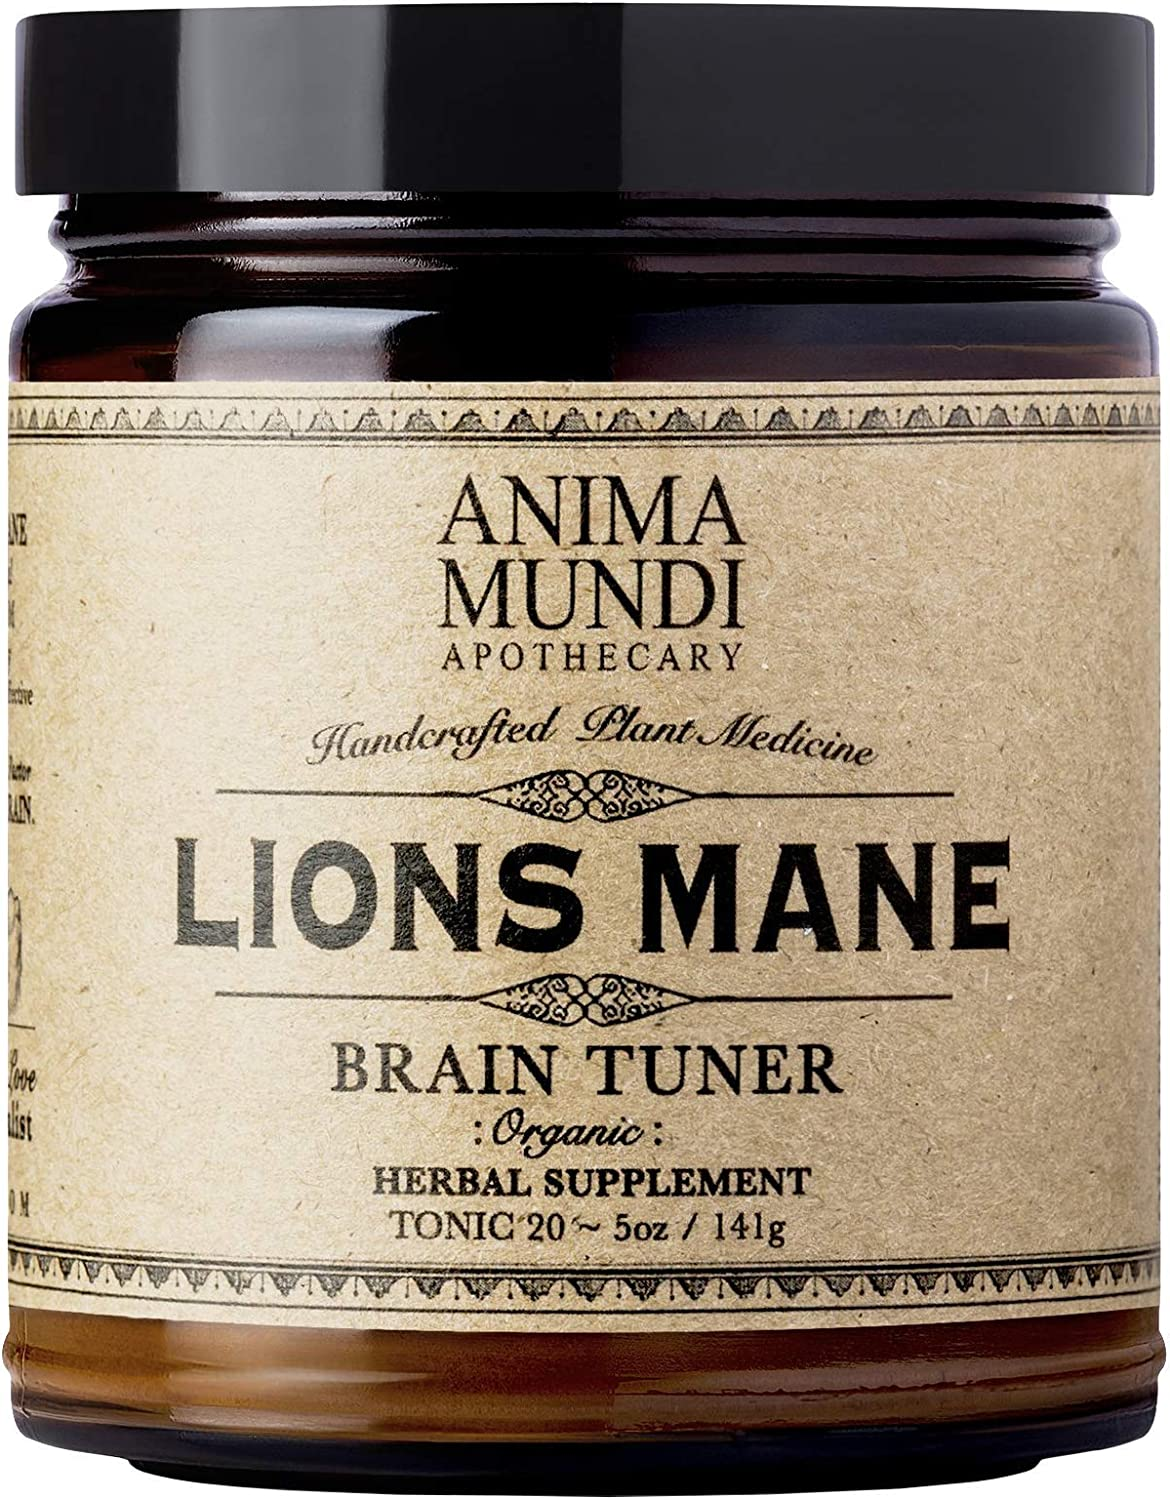 Anima Mundi Lions Mane Brain Tuner Mushroom Powder – Pure Organic Herbal Supplement, Sustainably Sourced 5oz 141g